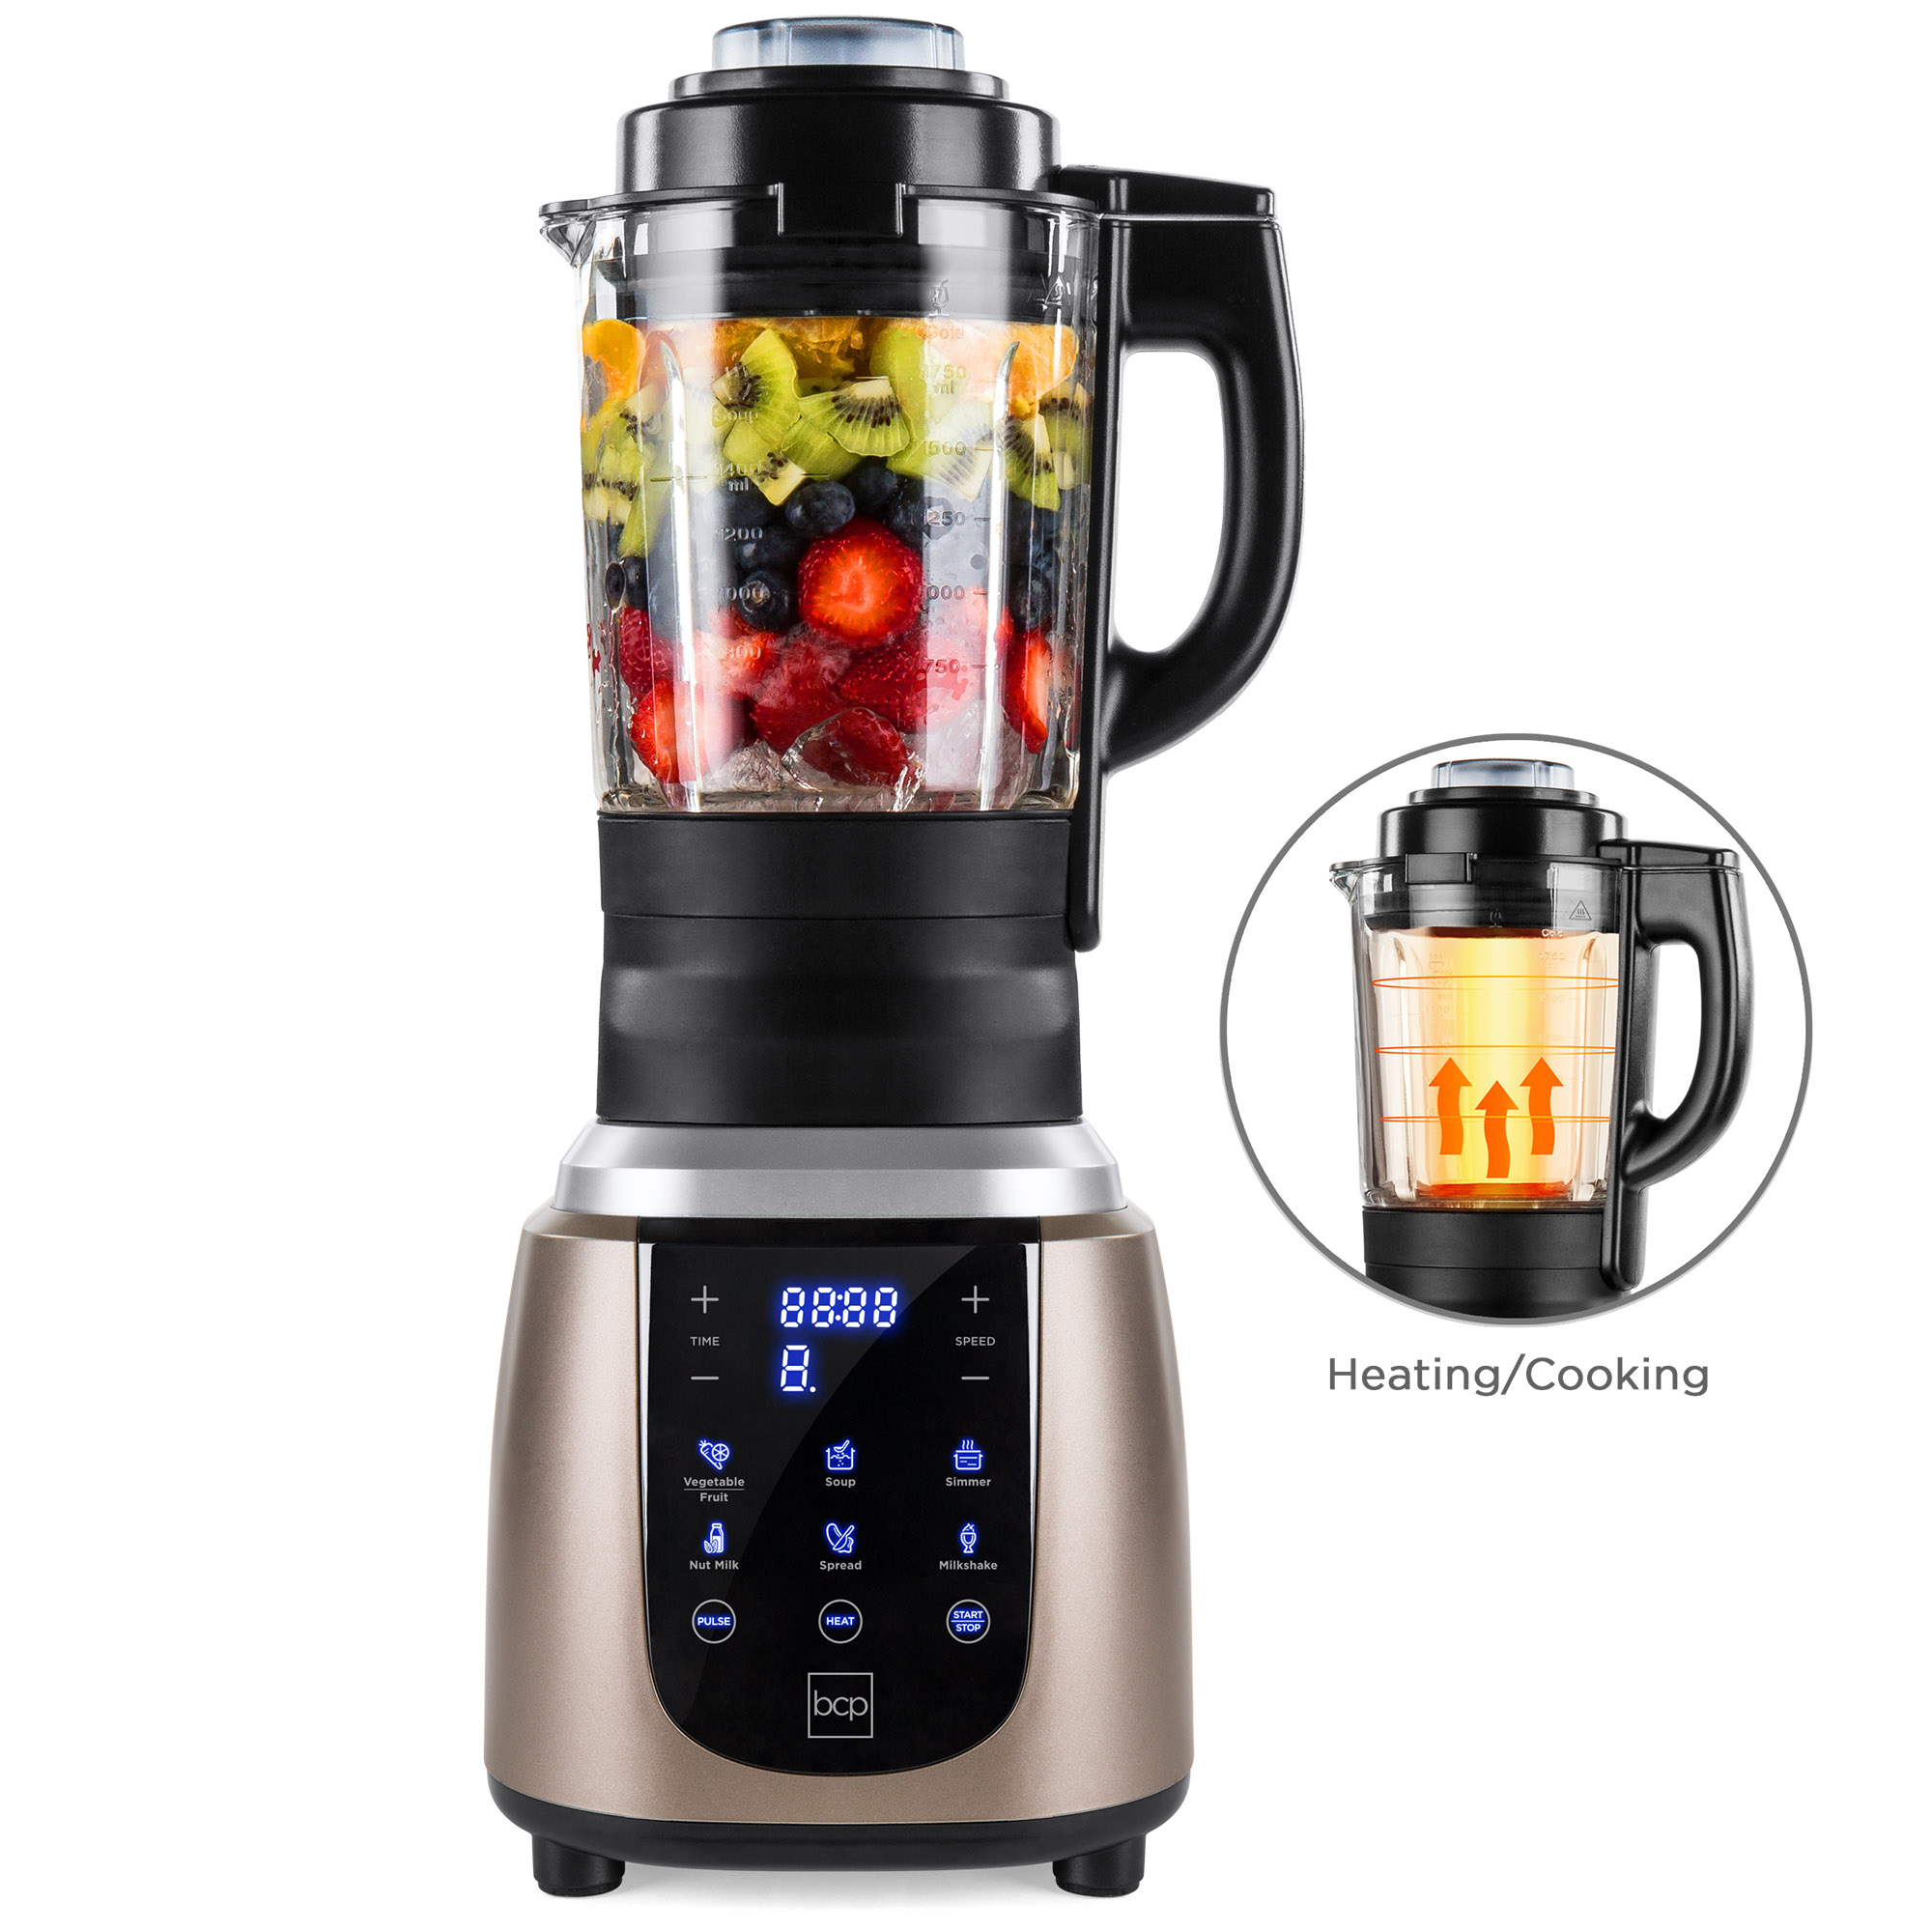 Best Choice Products 1200W 1.8L Multifunctional High-Speed Digital Professional Kitchen Smoothie Blender for Juices, Baby Food, Soup w/ Heating Function, Auto-Clean, Glass Jar, Up To 42,000RPM